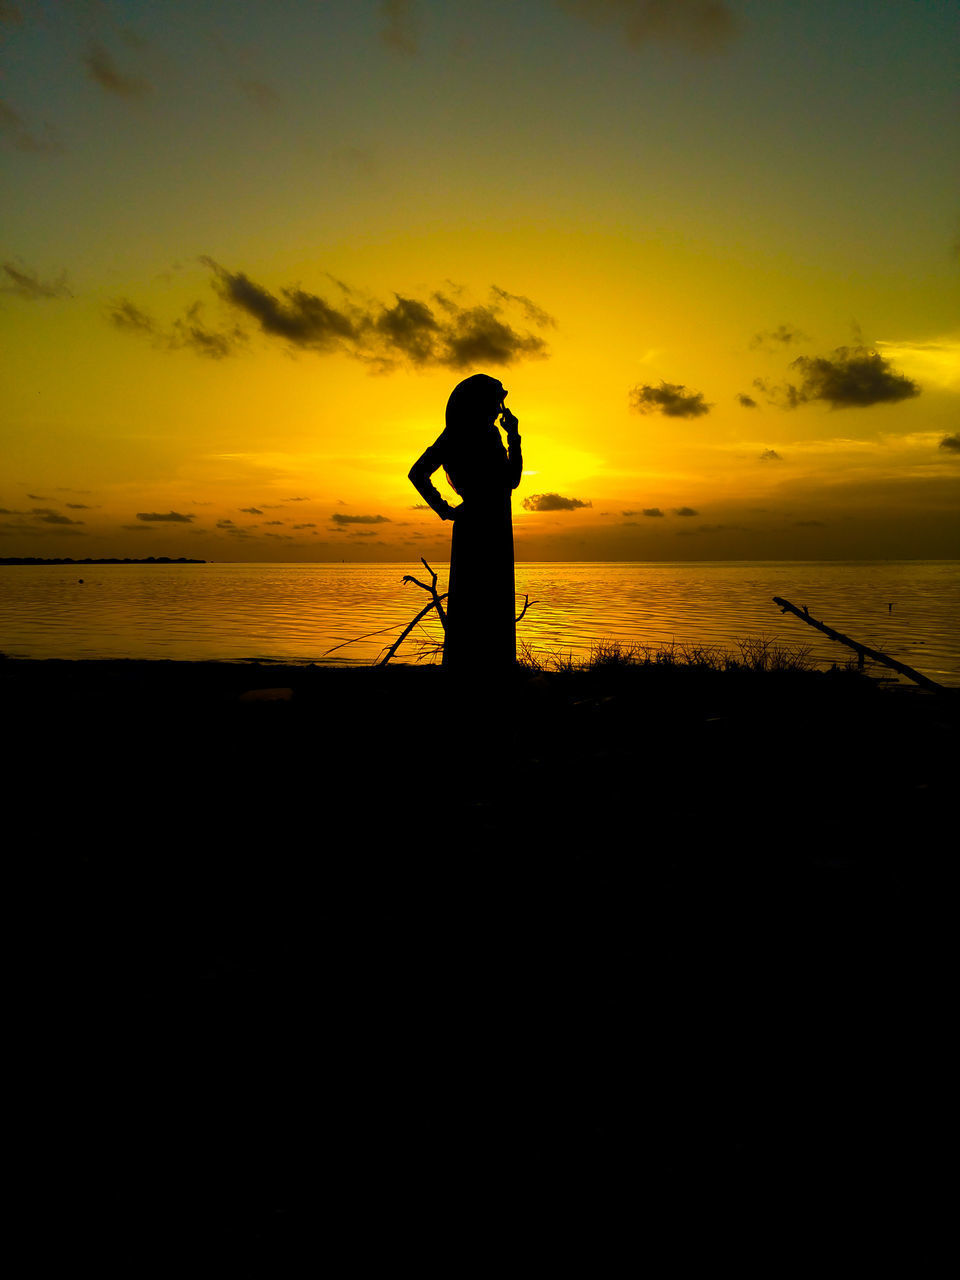 sunset, silhouette, sea, nature, beauty in nature, scenics, water, standing, fishing, tranquil scene, one person, sky, tranquility, beach, outdoors, horizon over water, real people, full length, leisure activity, fishing pole, fishing tackle, camera - photographic equipment, people